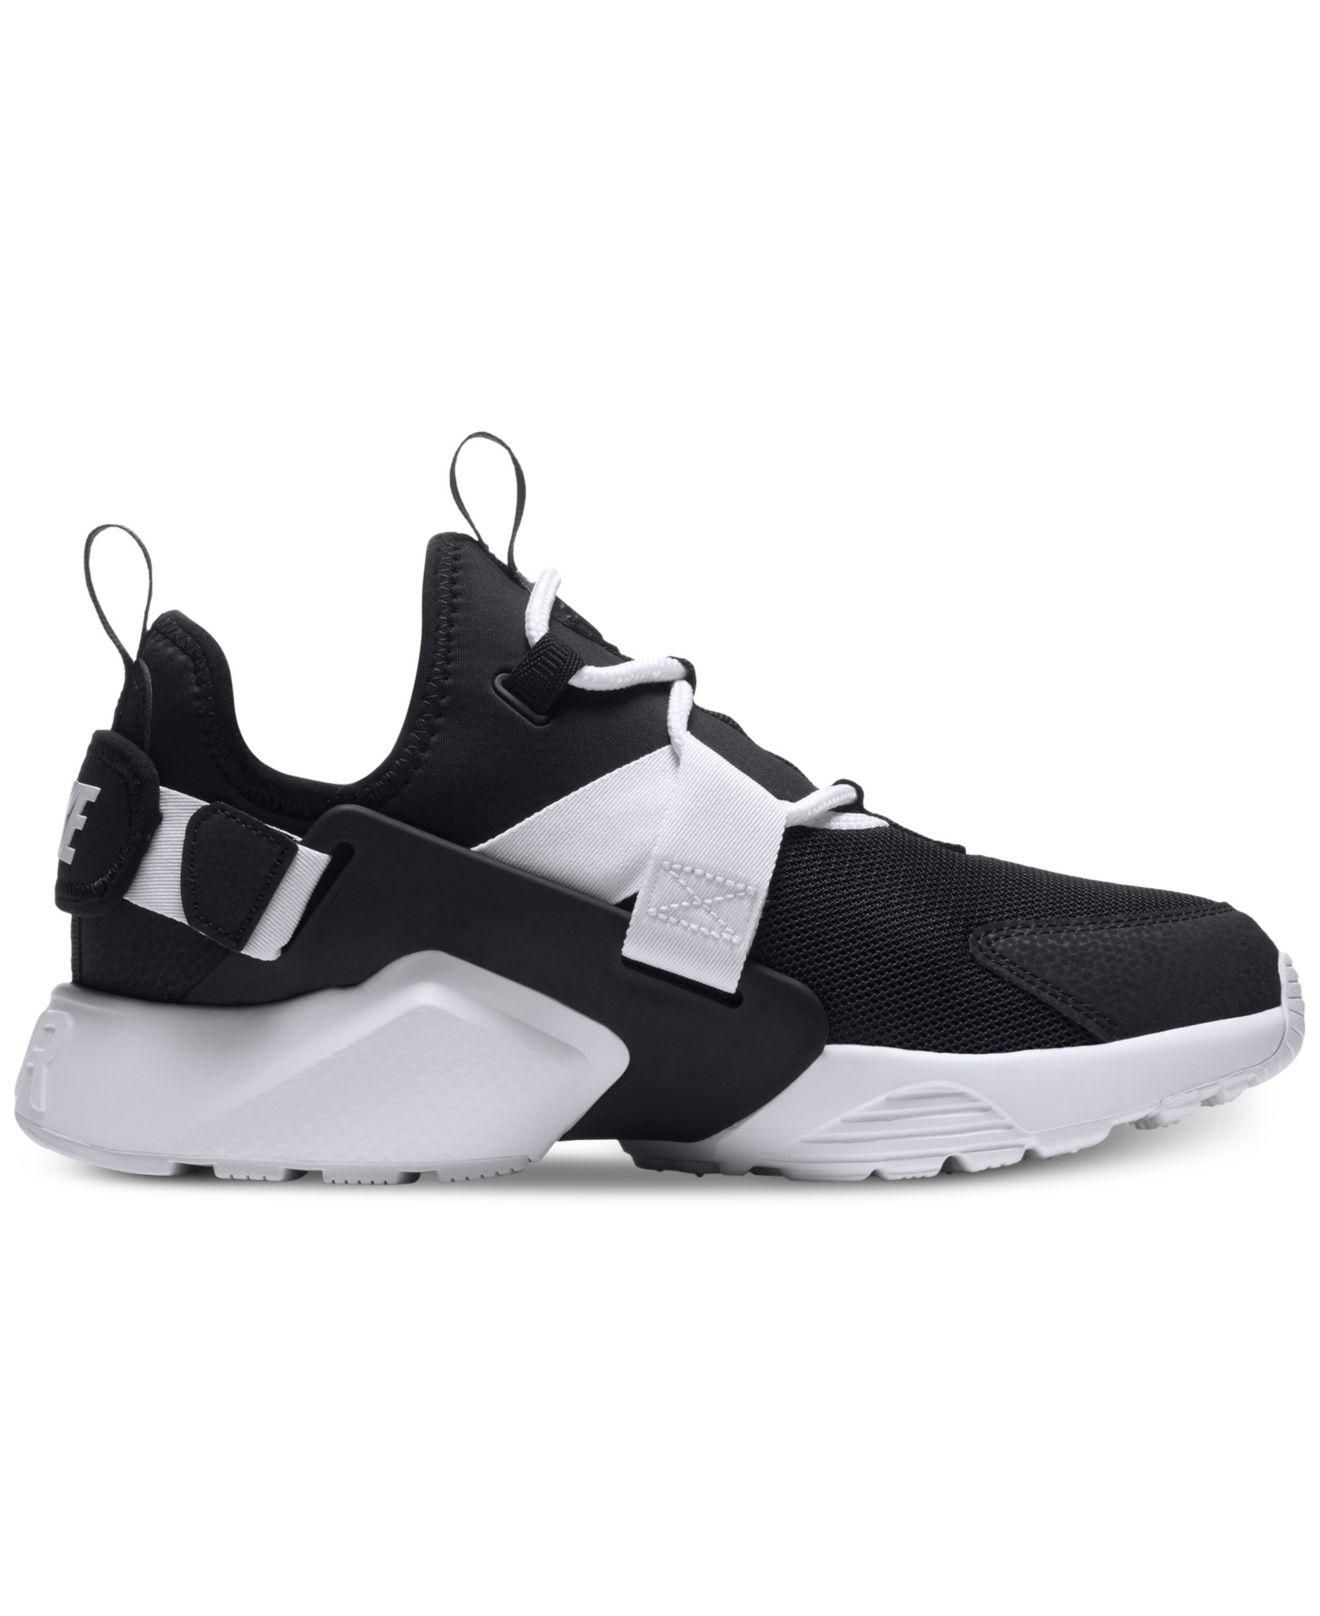 nike huarache city men's